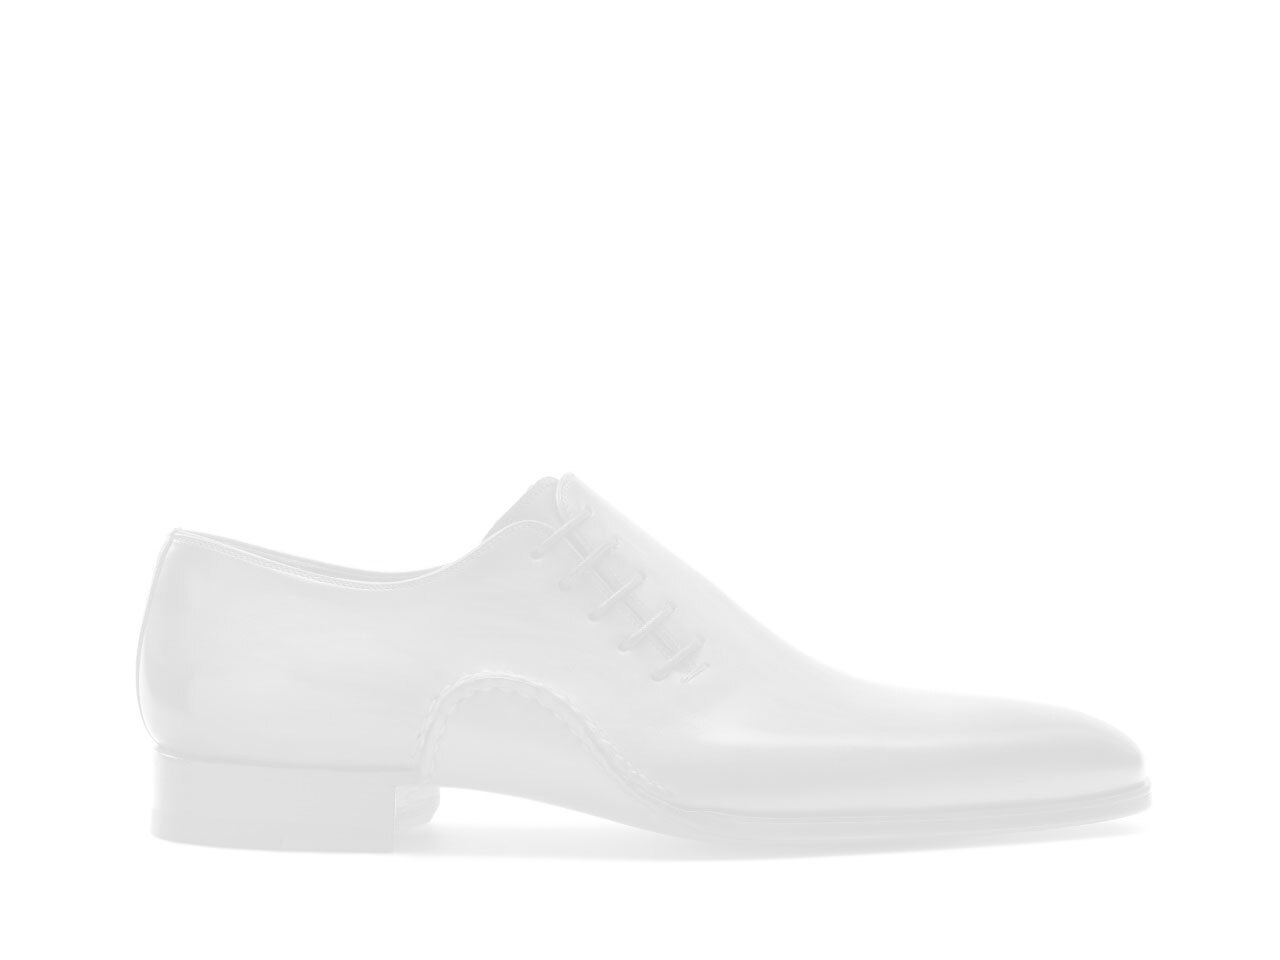 Pair of the Magnanni Marlow Tinto Men's Sneakers